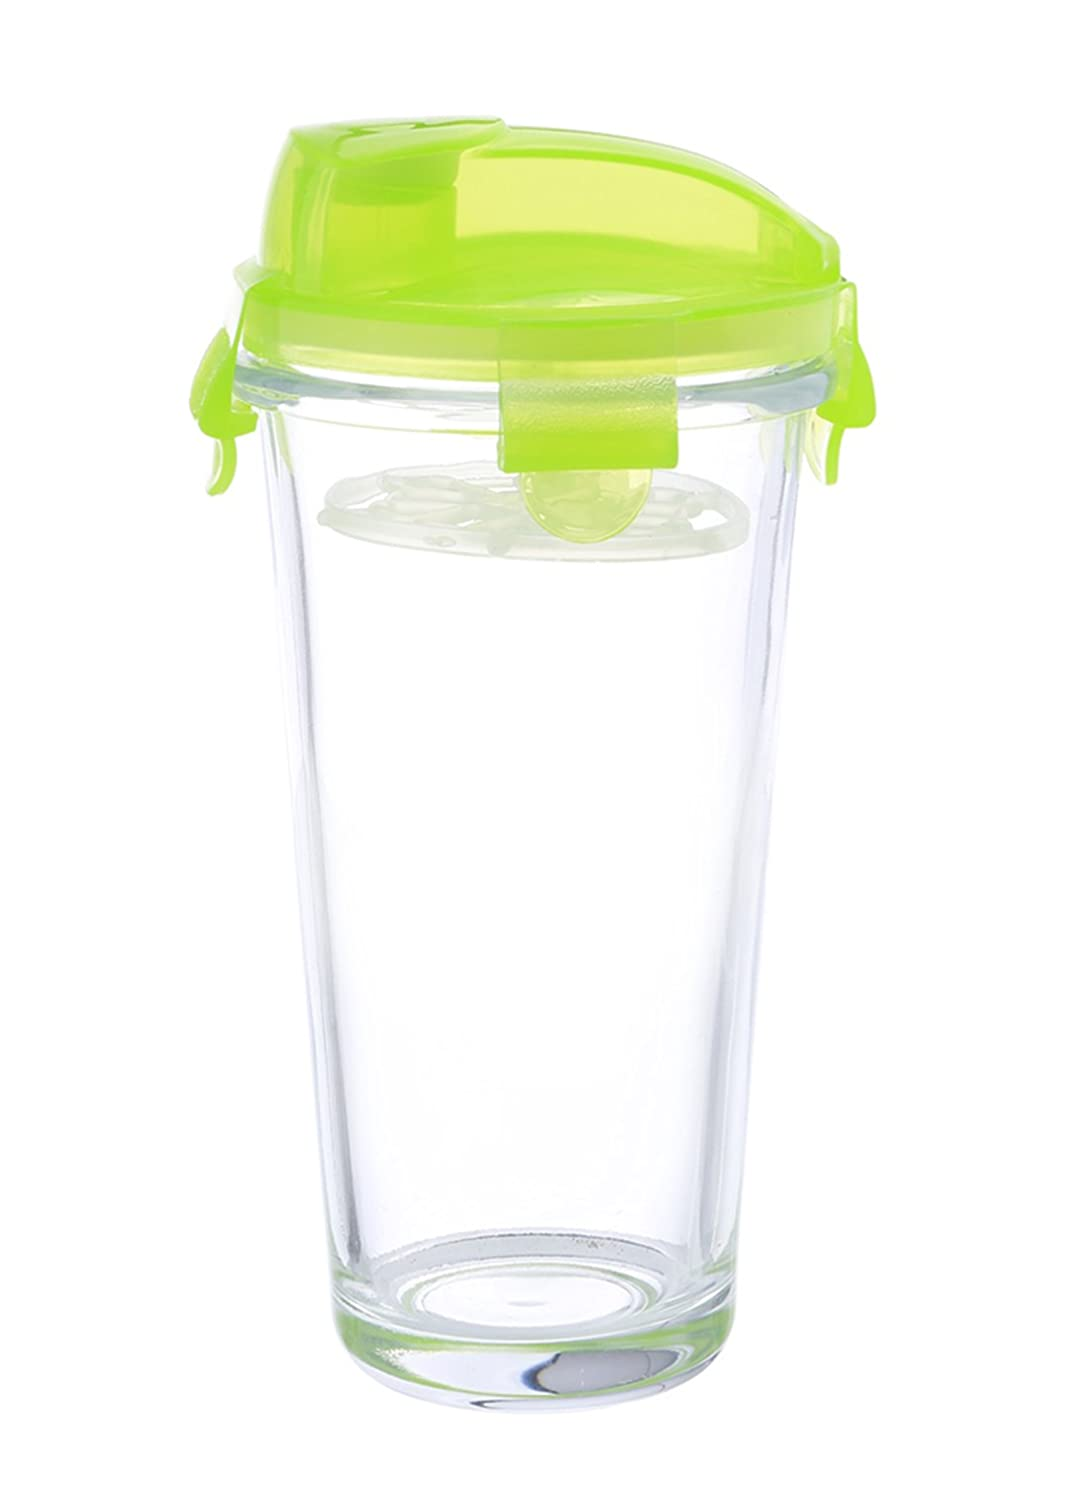 Kinetic GoGREEN Glassworks Series Glass Beverage Shaker with Easy Pour Spout Lid and Blender/Mixer 01362 by Kinetic   B002GU7YMO